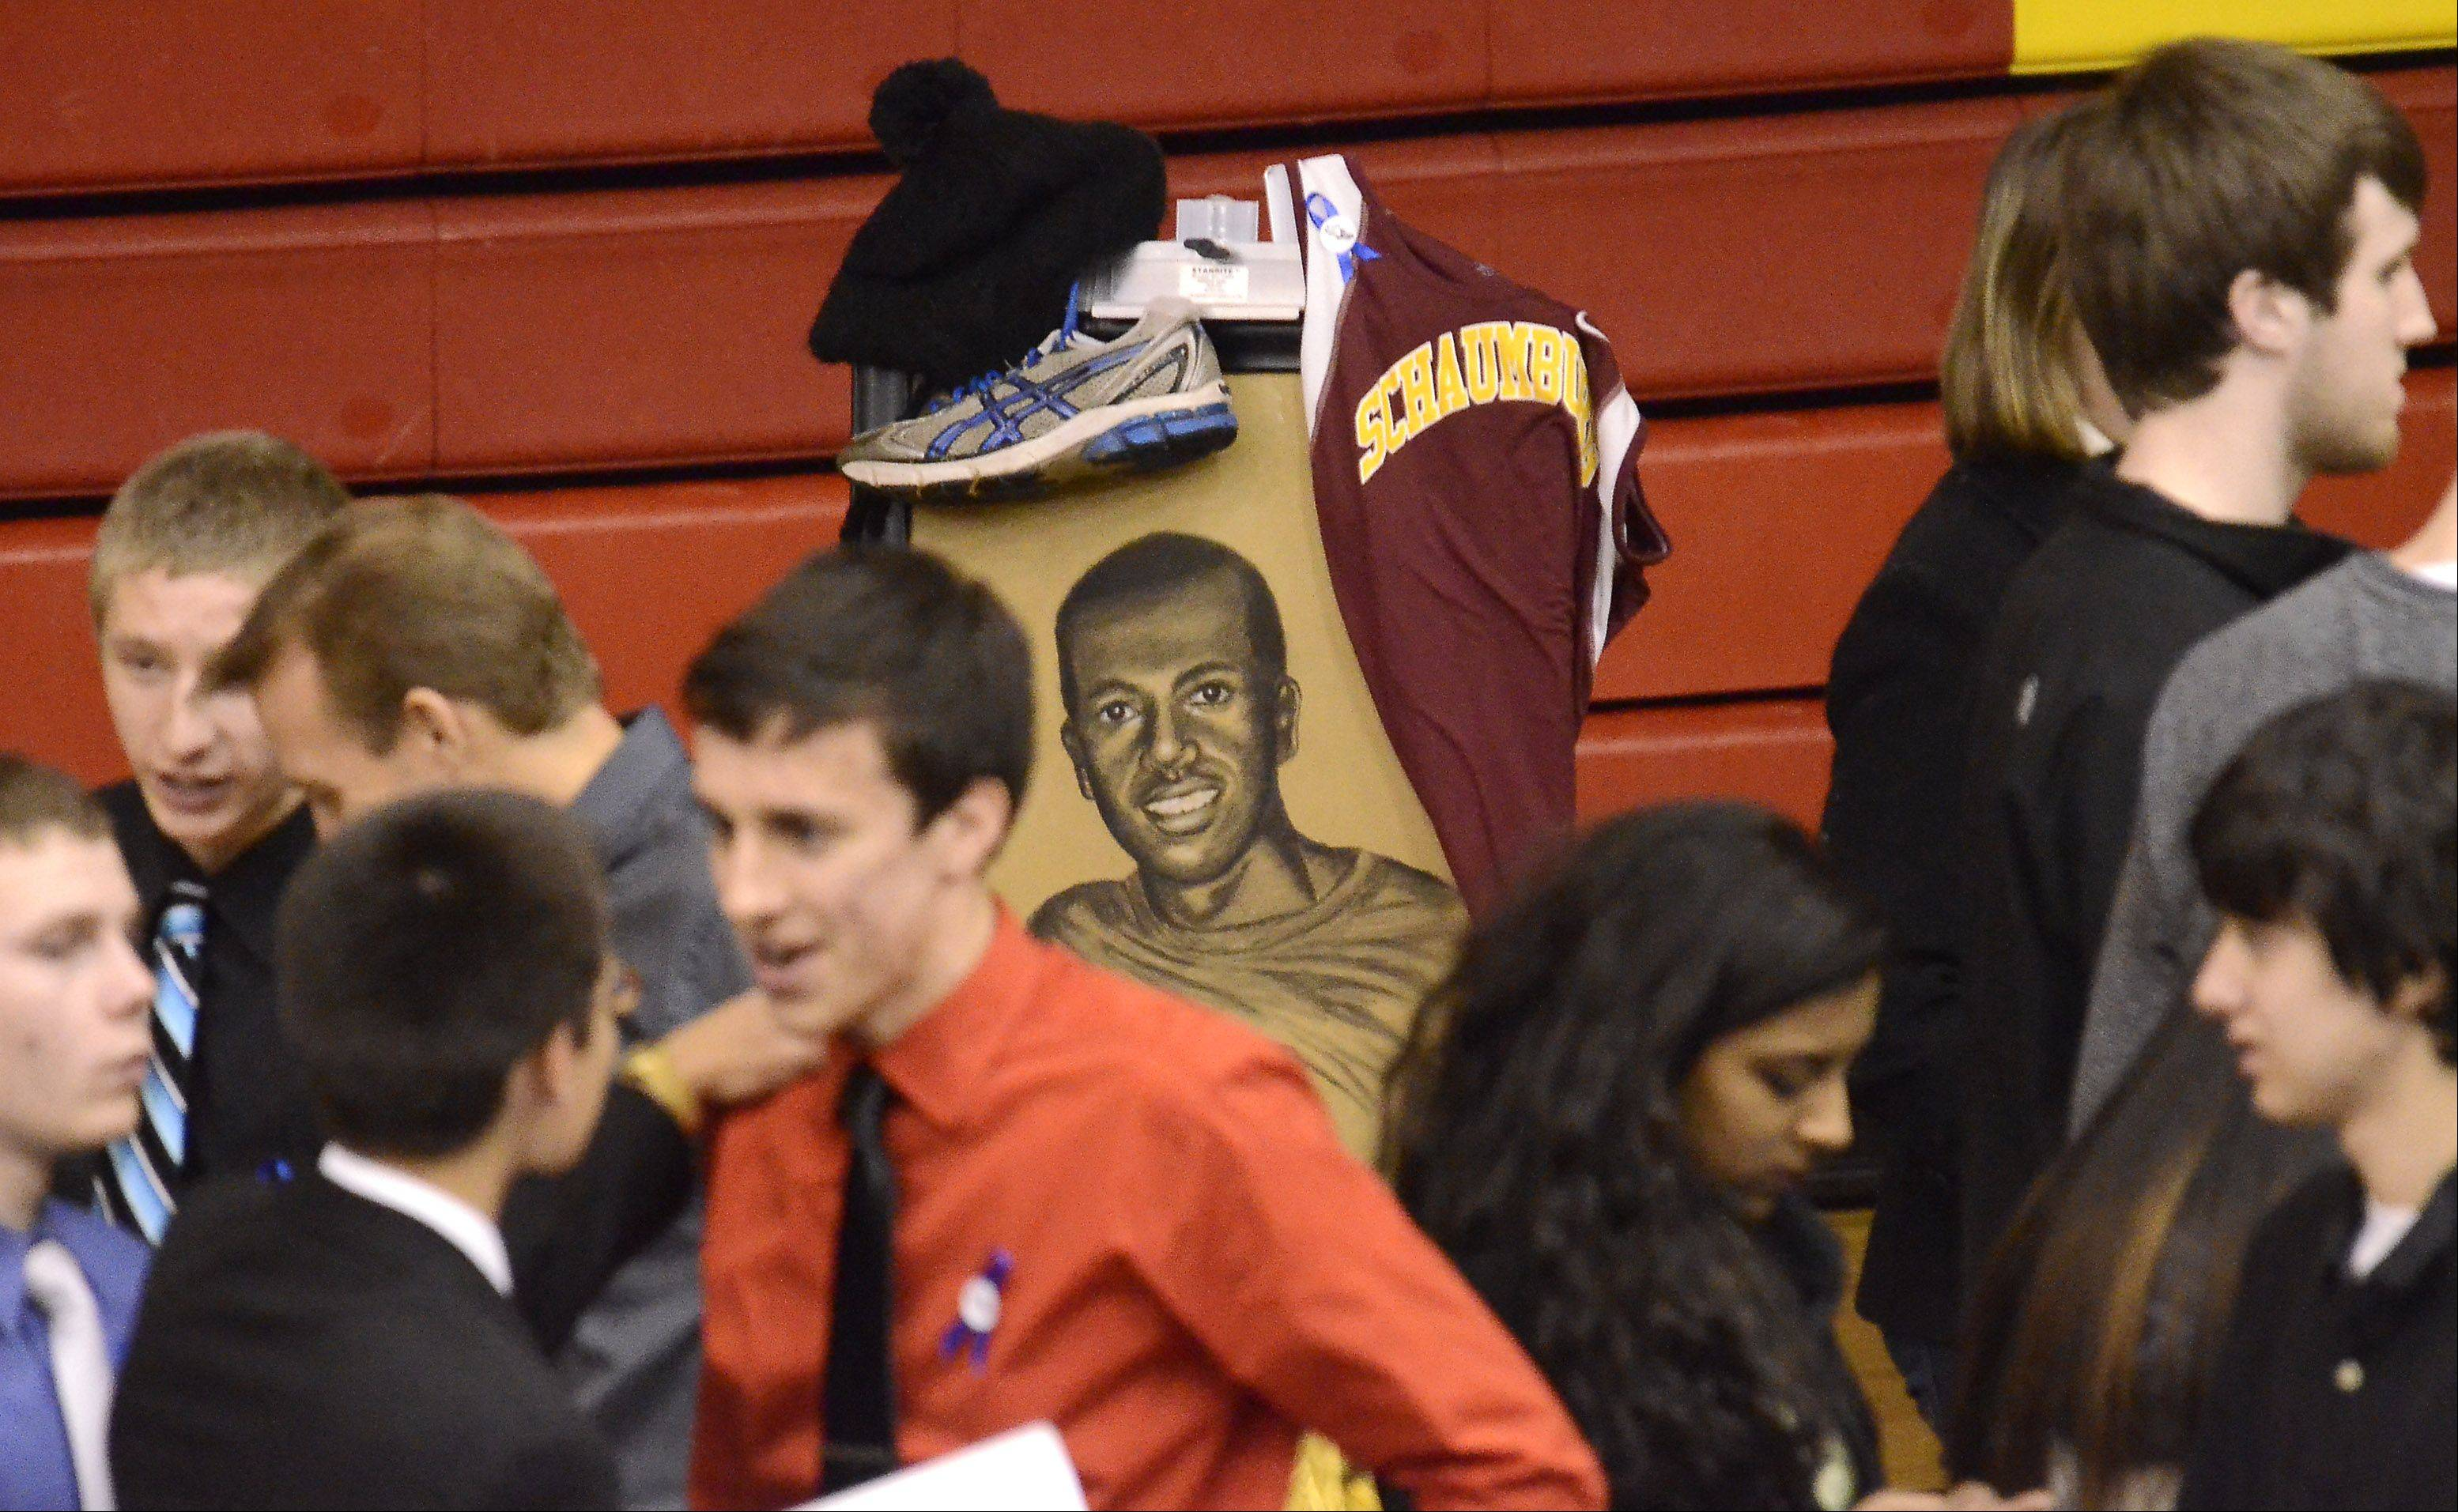 A portrait of Schaumburg student Mikias Tibebu looks back at his friends and classmates at a memorial service for him Thursday in the school gym. The portrait was done by Olivia Zubko.